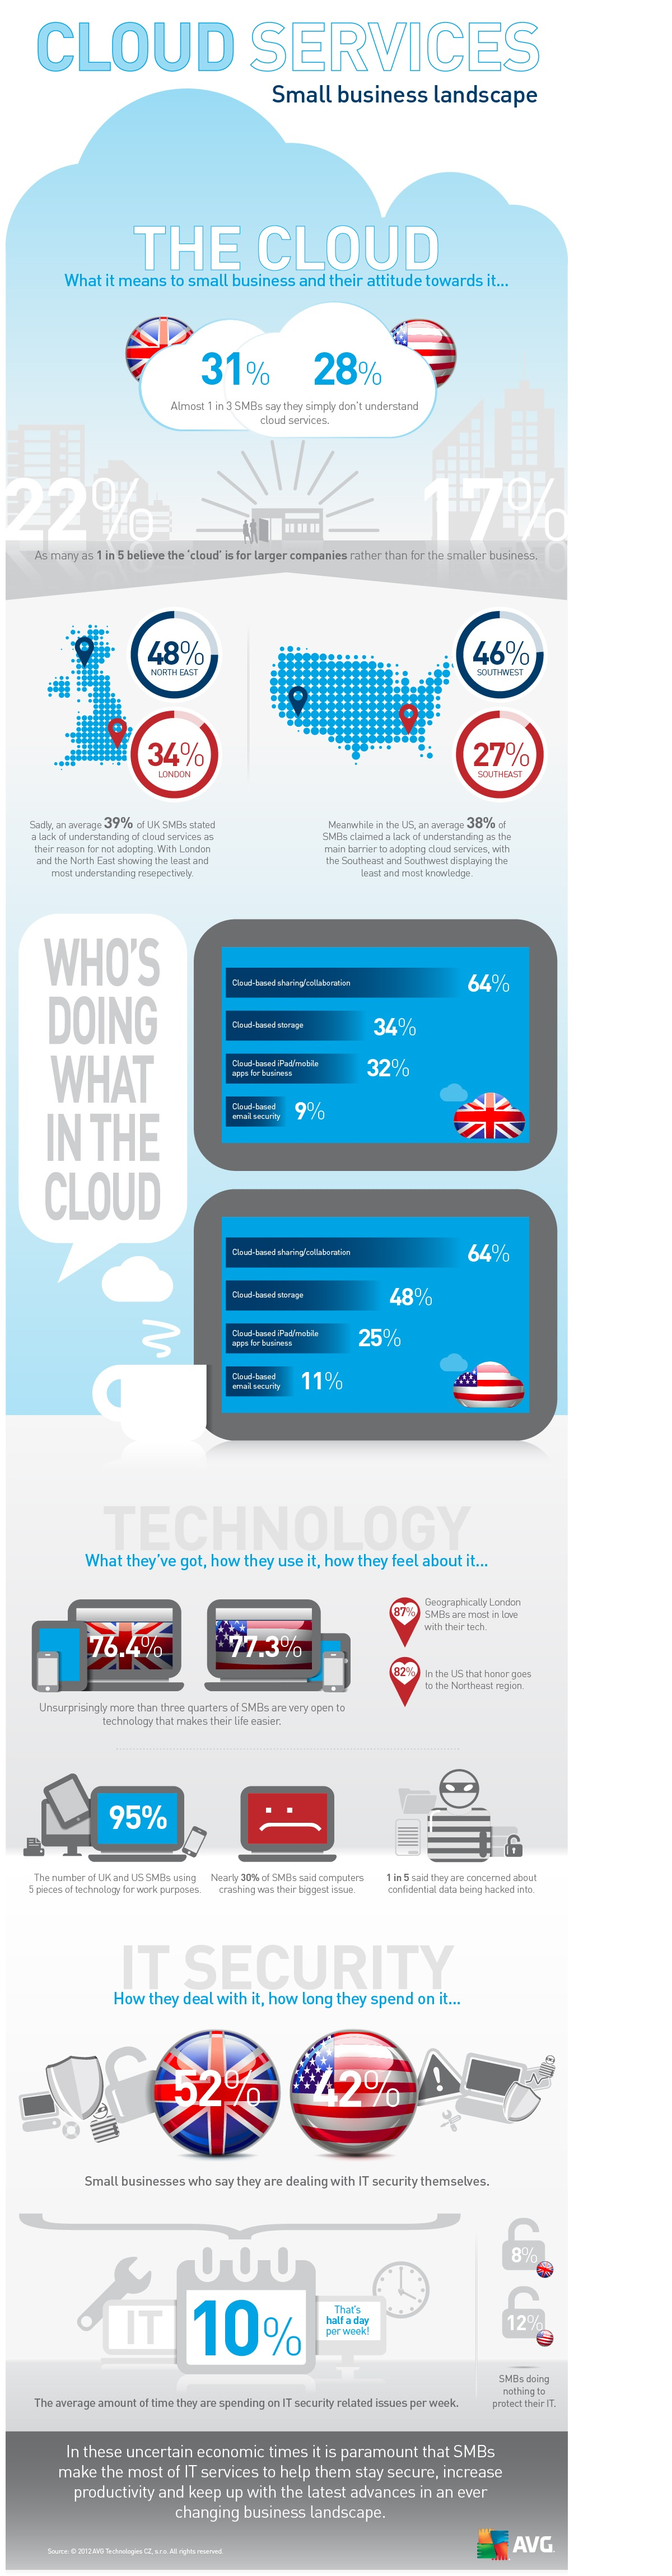 Infographic-SMB-Cloud-Services-Study-September-2012